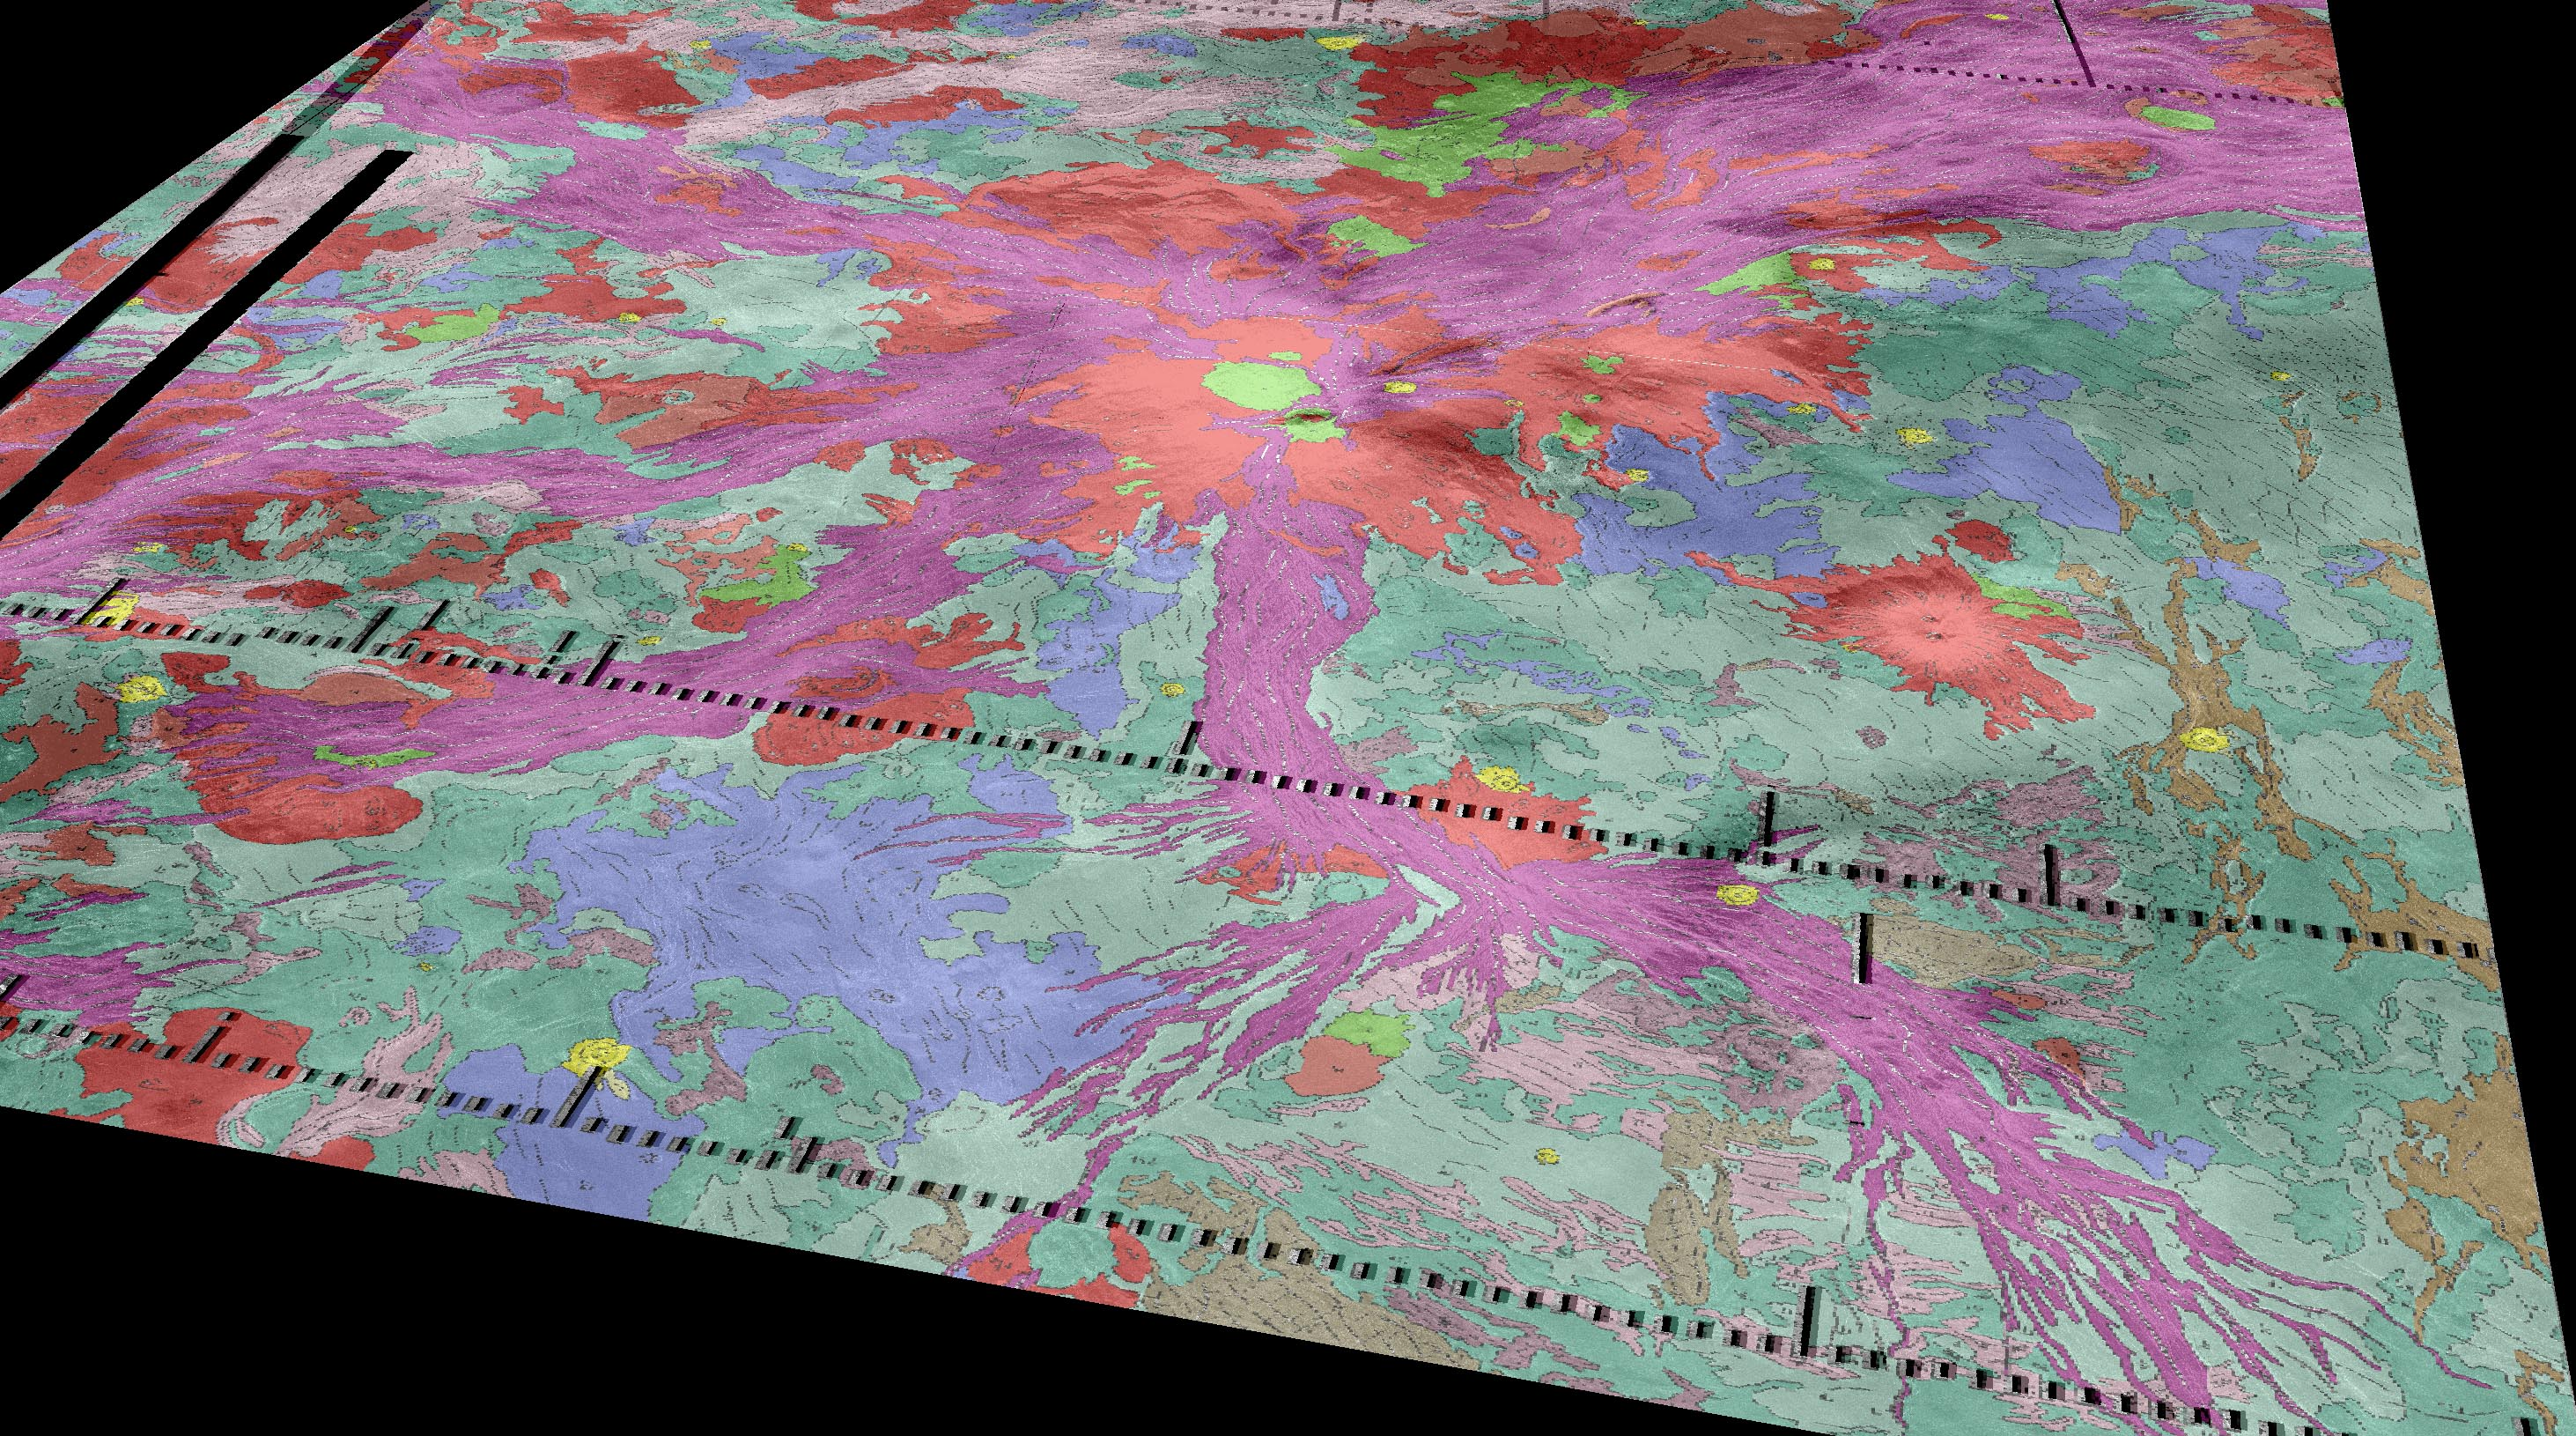 Volcanoes on Venus. This perspective view of the geology of Venus superposed on topography shows a broad topographic rise (Atla Regio) in the center (red, with radiating purple spokes) and surrounding volcanic plains (green and blue)